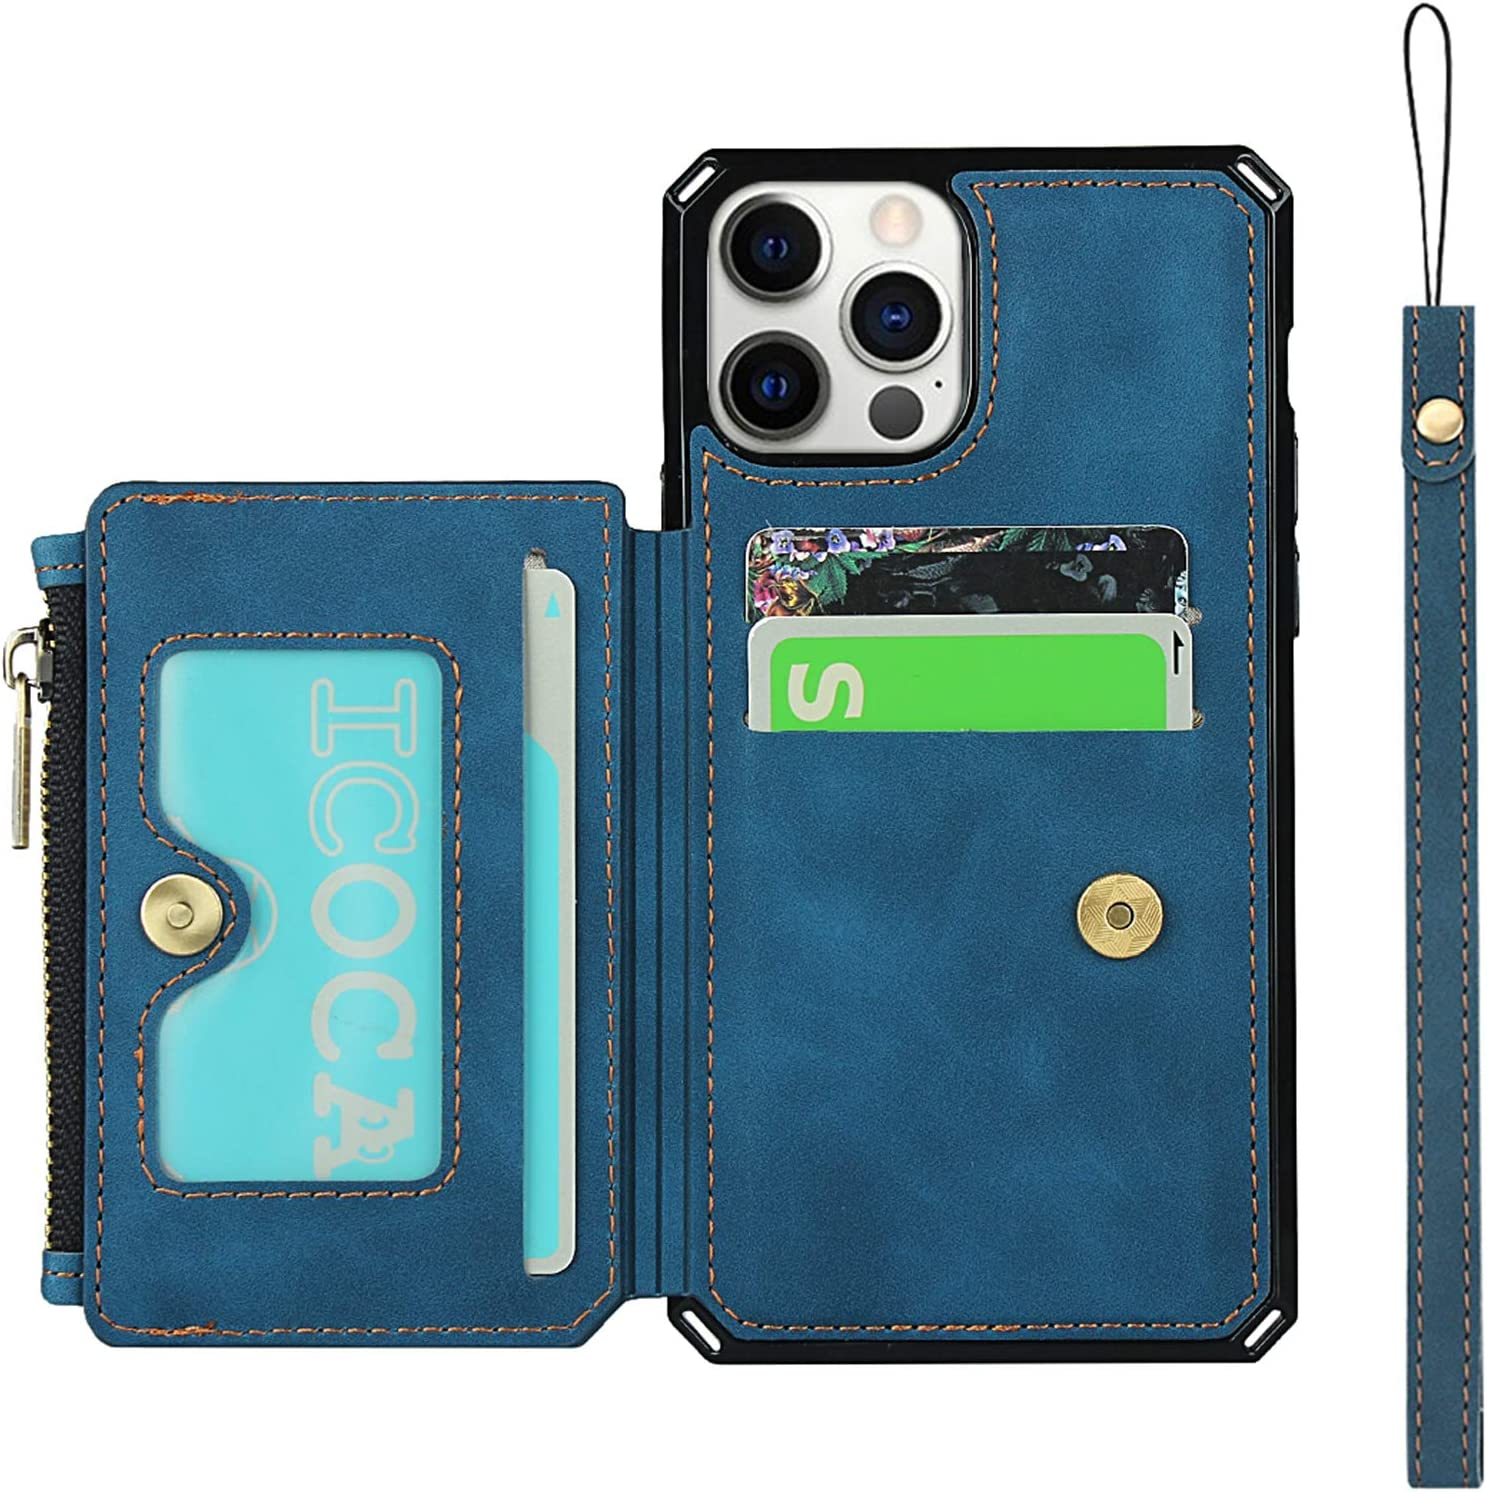 Jaorty Wallet Case with Card Holder for iPhone 12 Pro Max,RFID Blocking Luxury PU Leather Kickstand Card Slots,Magnetic Clasp and Wrist Strap Zipper Pocket Flip Case for iPhone 12 Pro Max 6.7